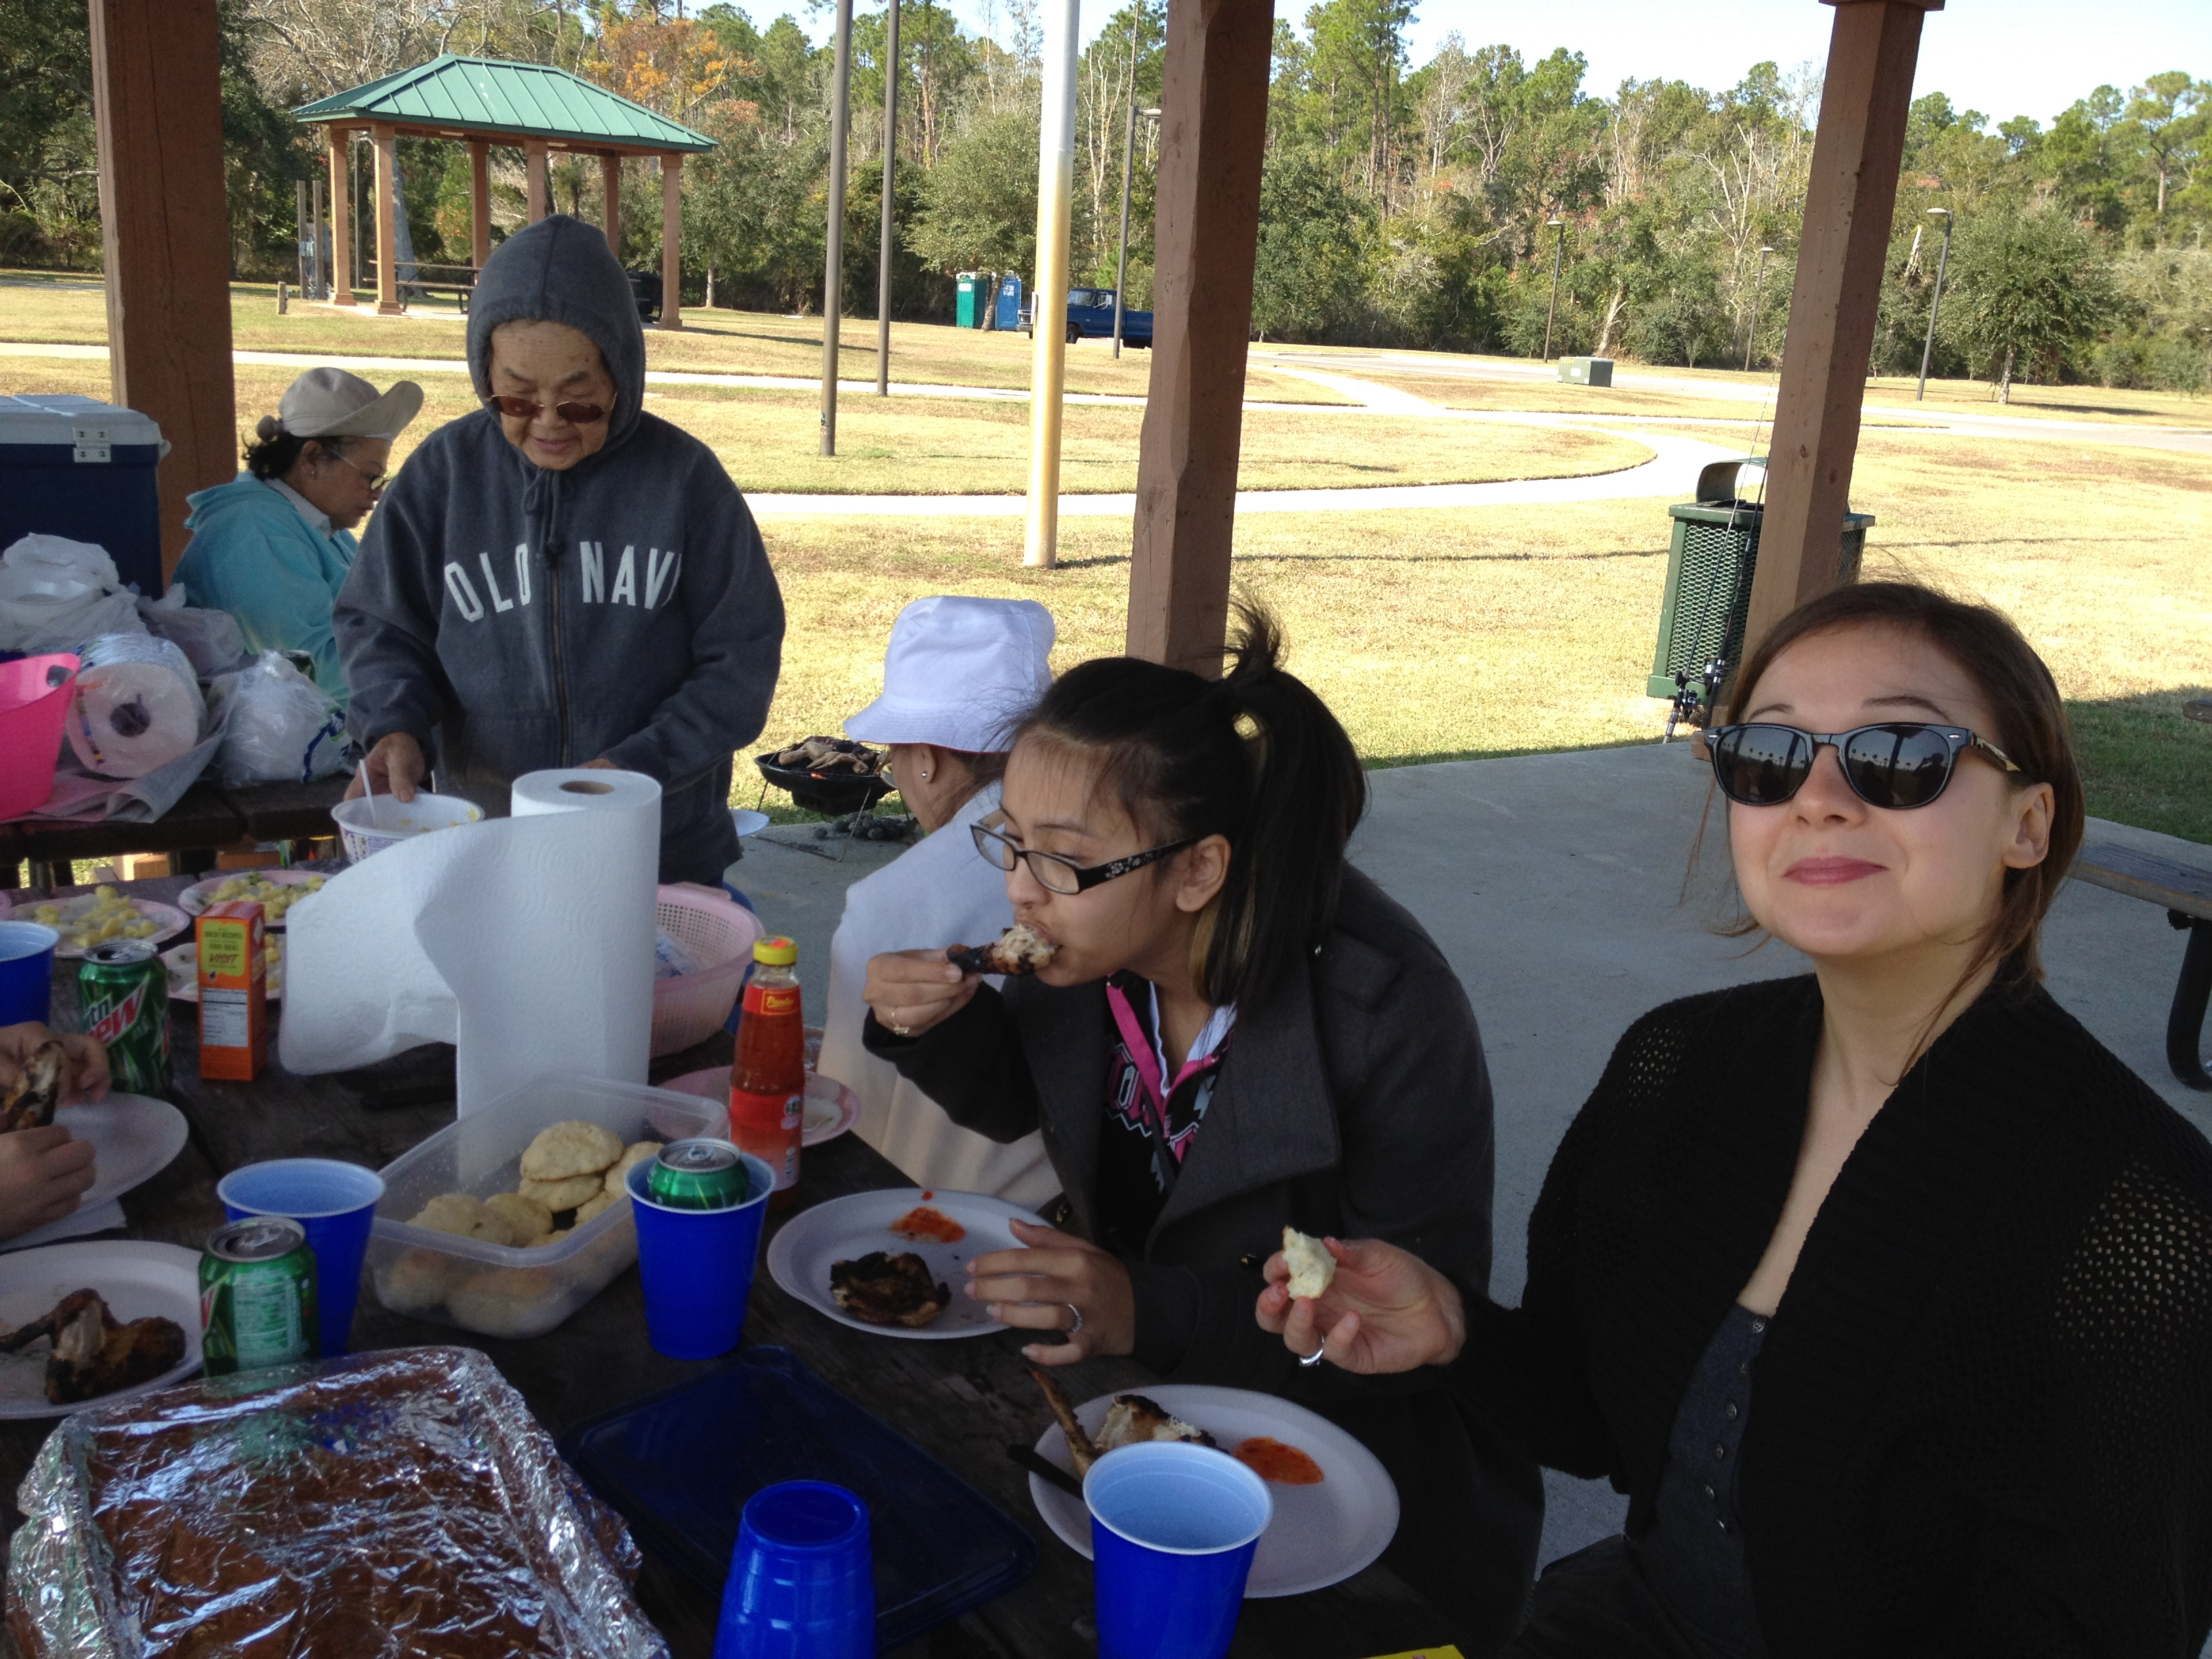 Seniors and Youth Outdoor Picnic